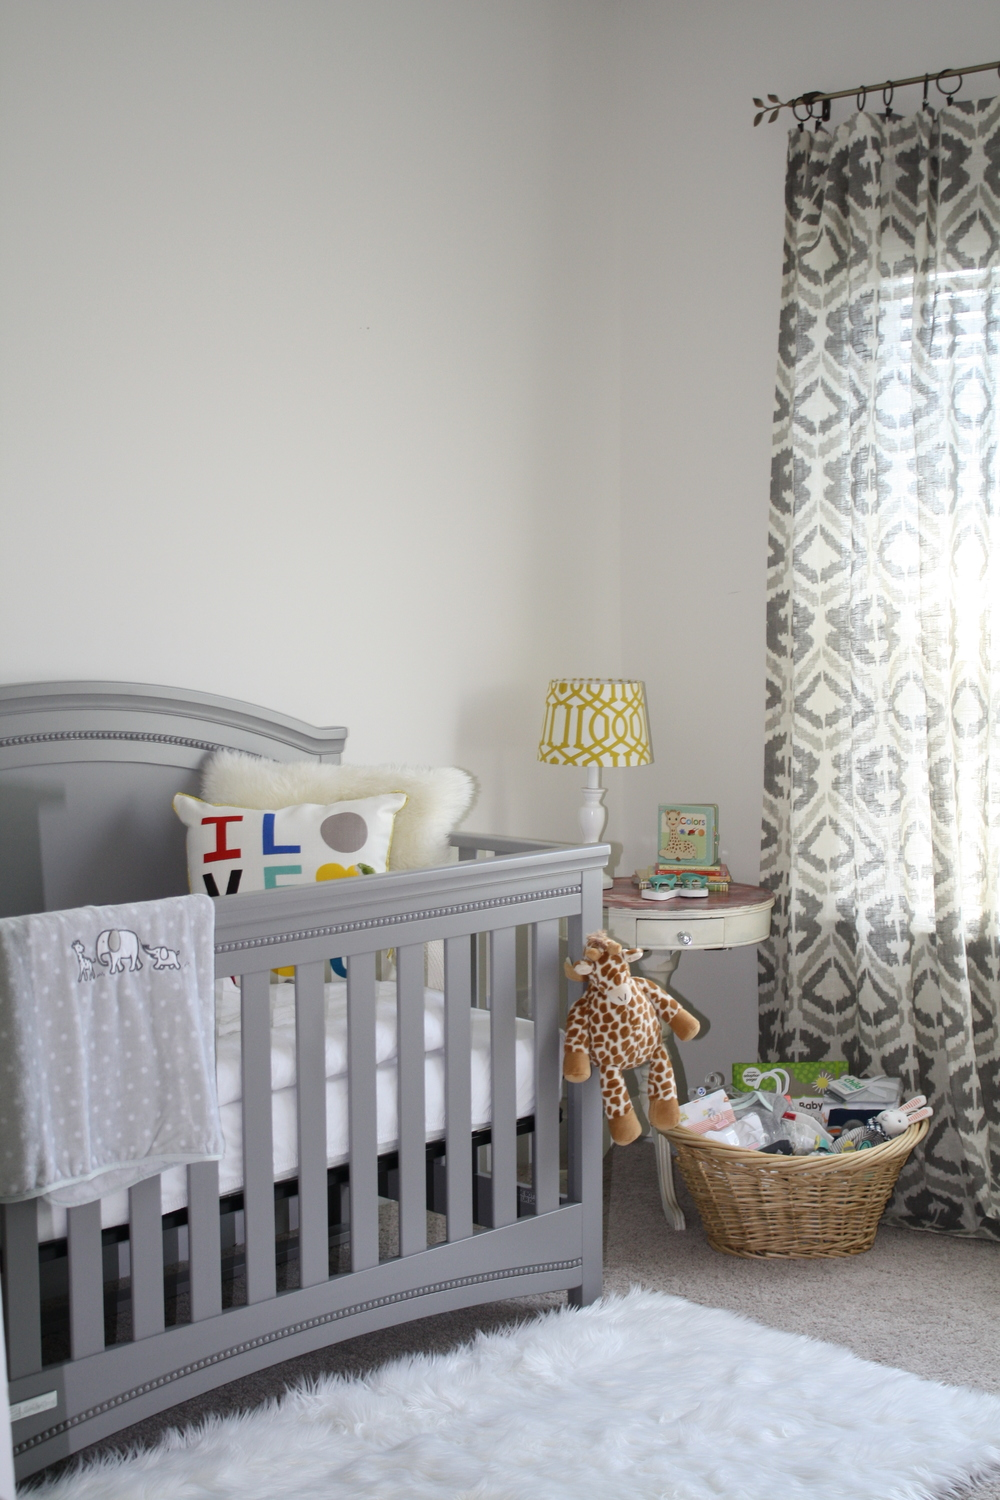 ...and heeeerrrre's the nursery! Or a little corner of it, anyway. We still need to get the glider (my mom is buying it and hasn't had a chance to come down yet) but at least we have a crib, dresser/changing table and a white furry rug. #priorities